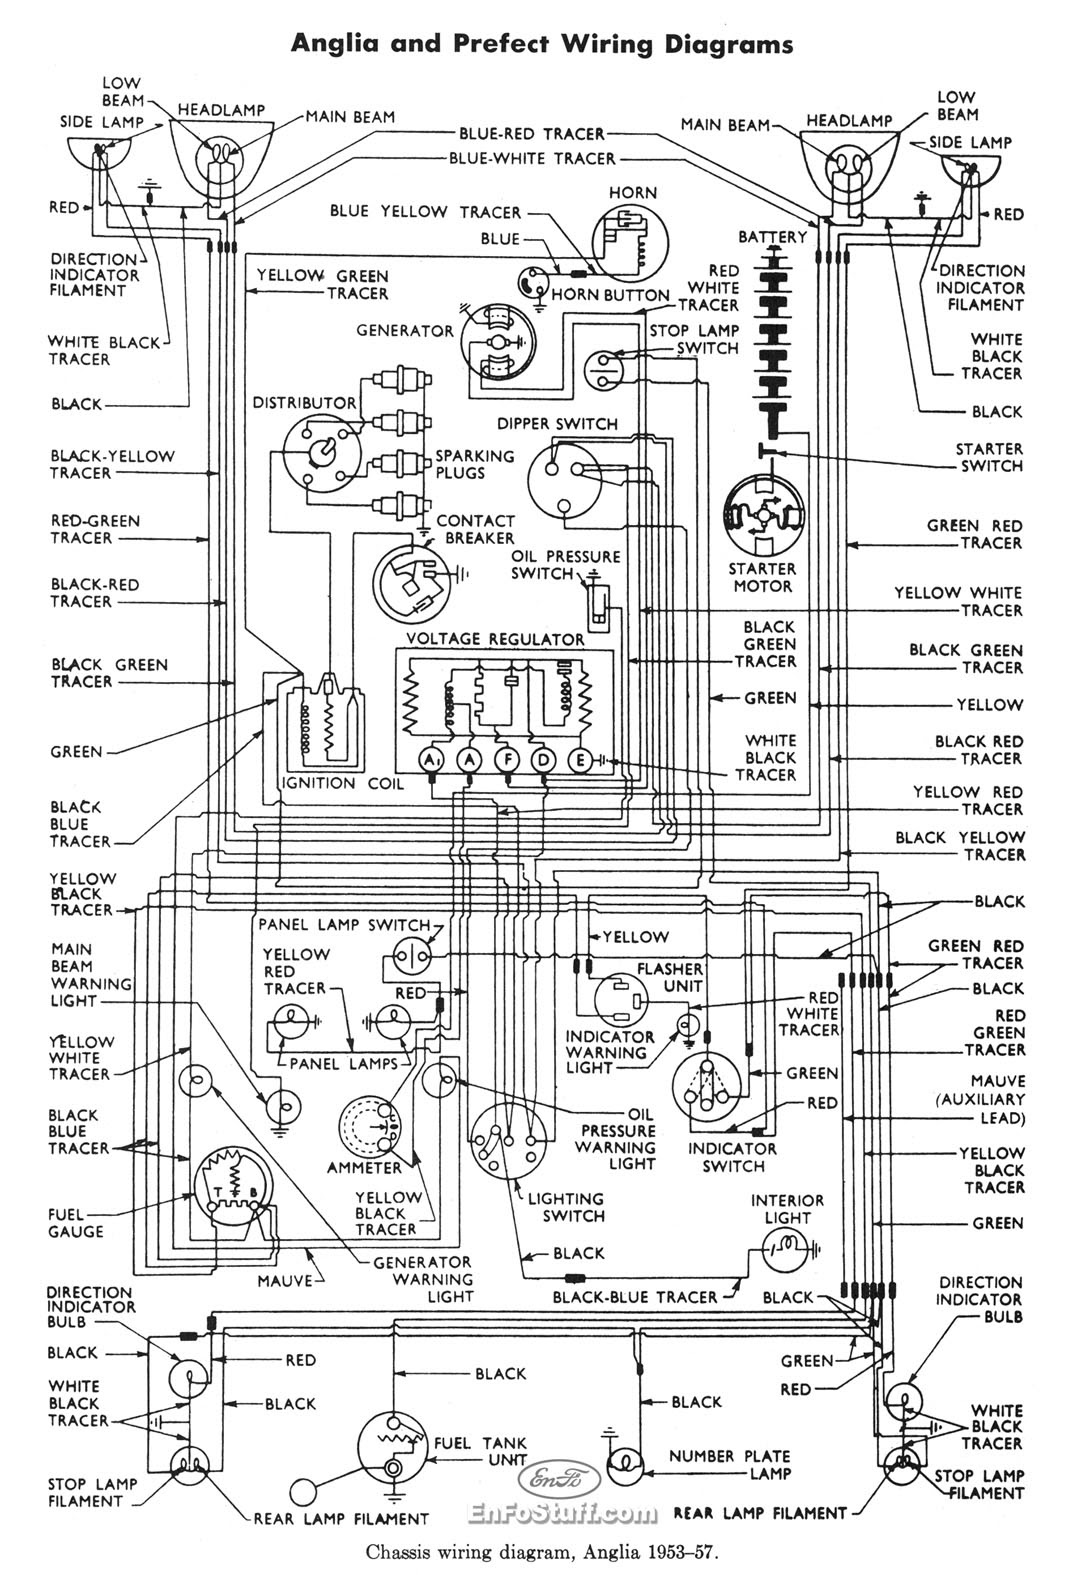 1953 Ford Car Wiring Diagram Free Picture Wiring Diagram Instruct Instruct Cfcarsnoleggio It